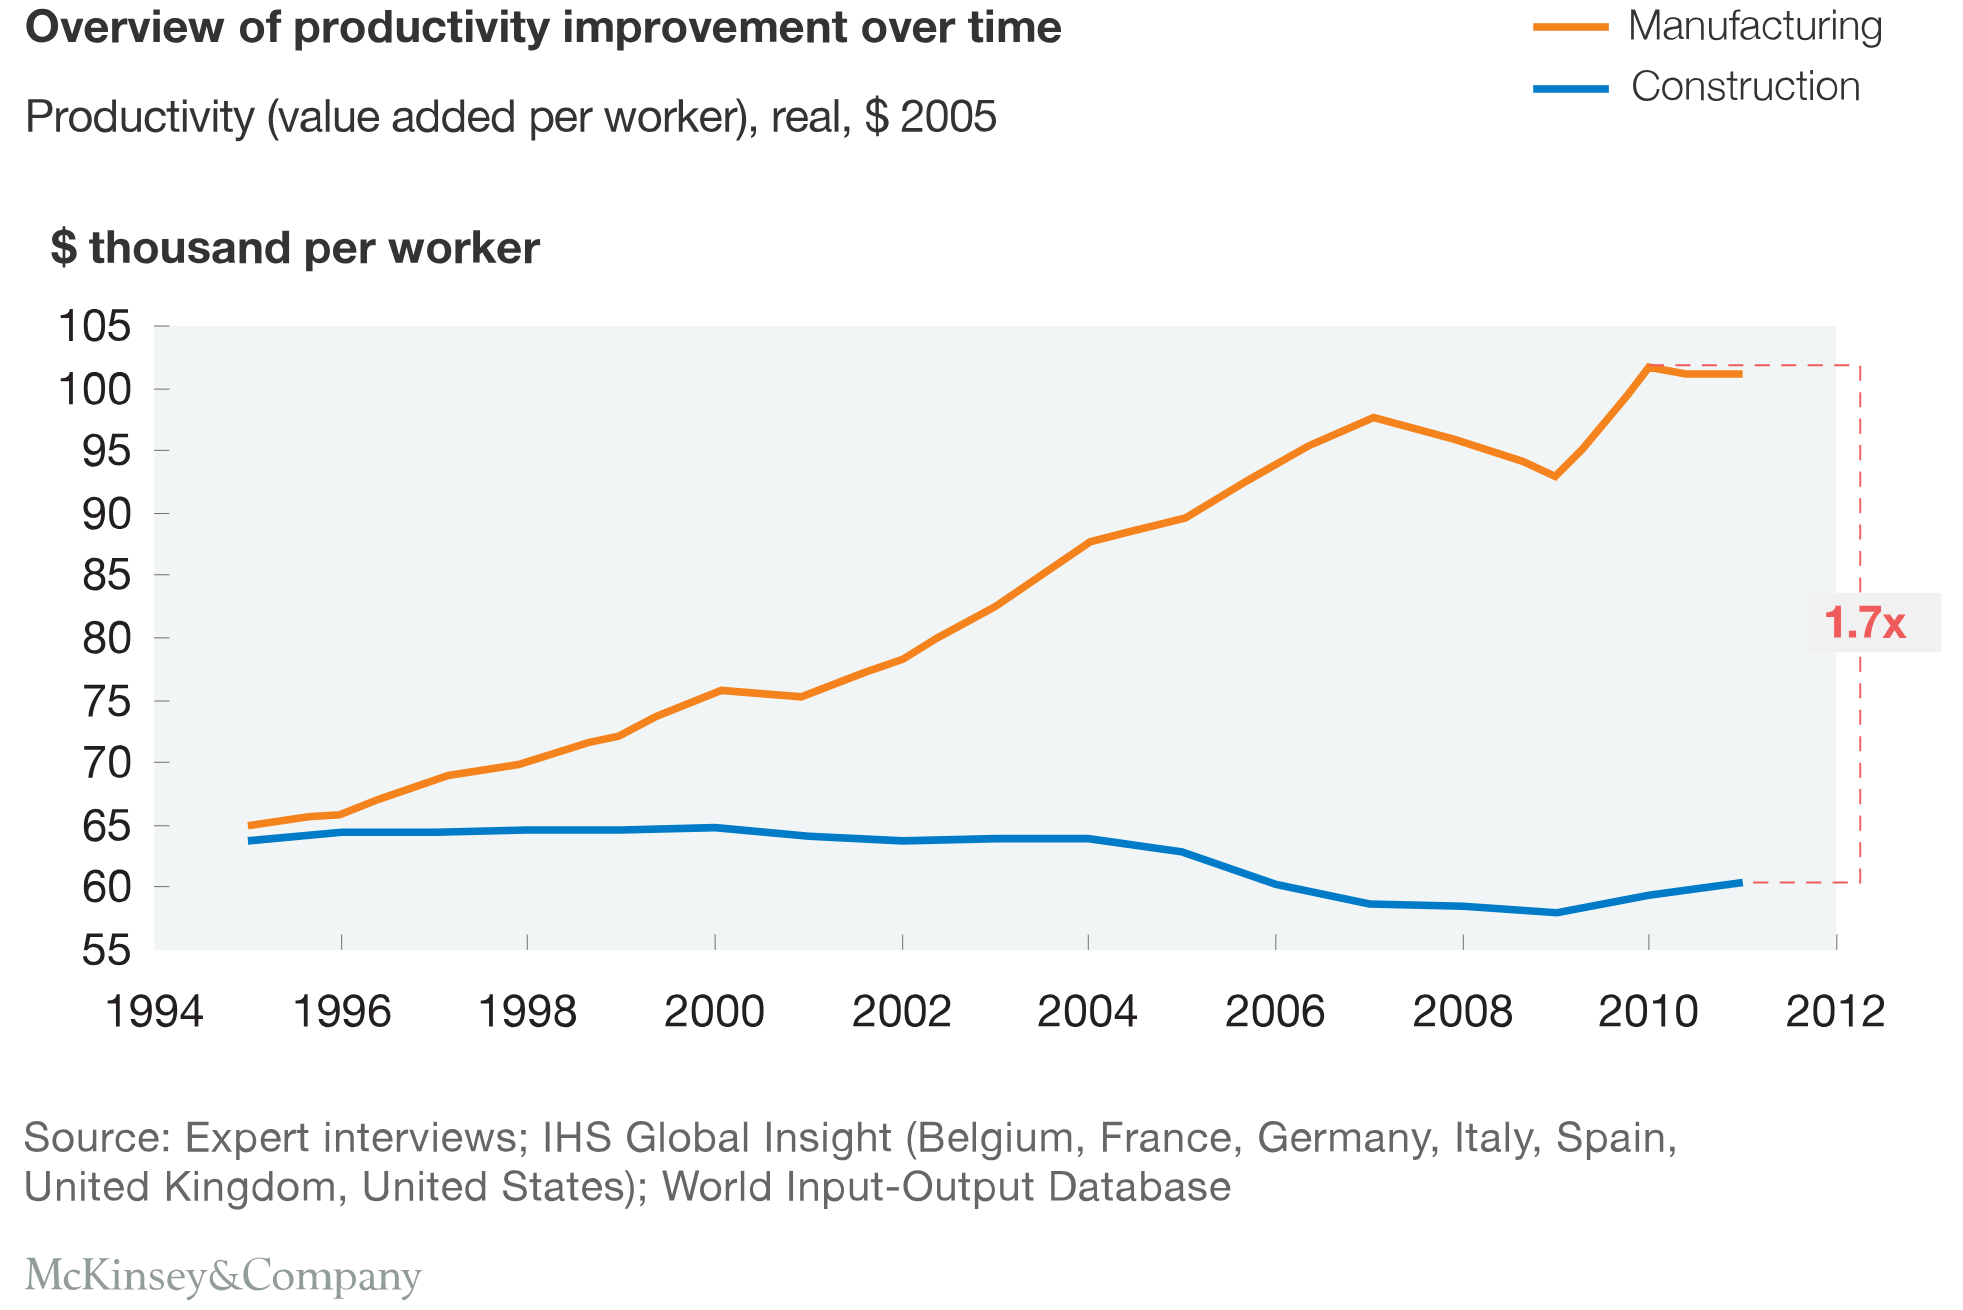 Overview of productivity improvement between construction and manufacturing between 1994 and 2012 over time